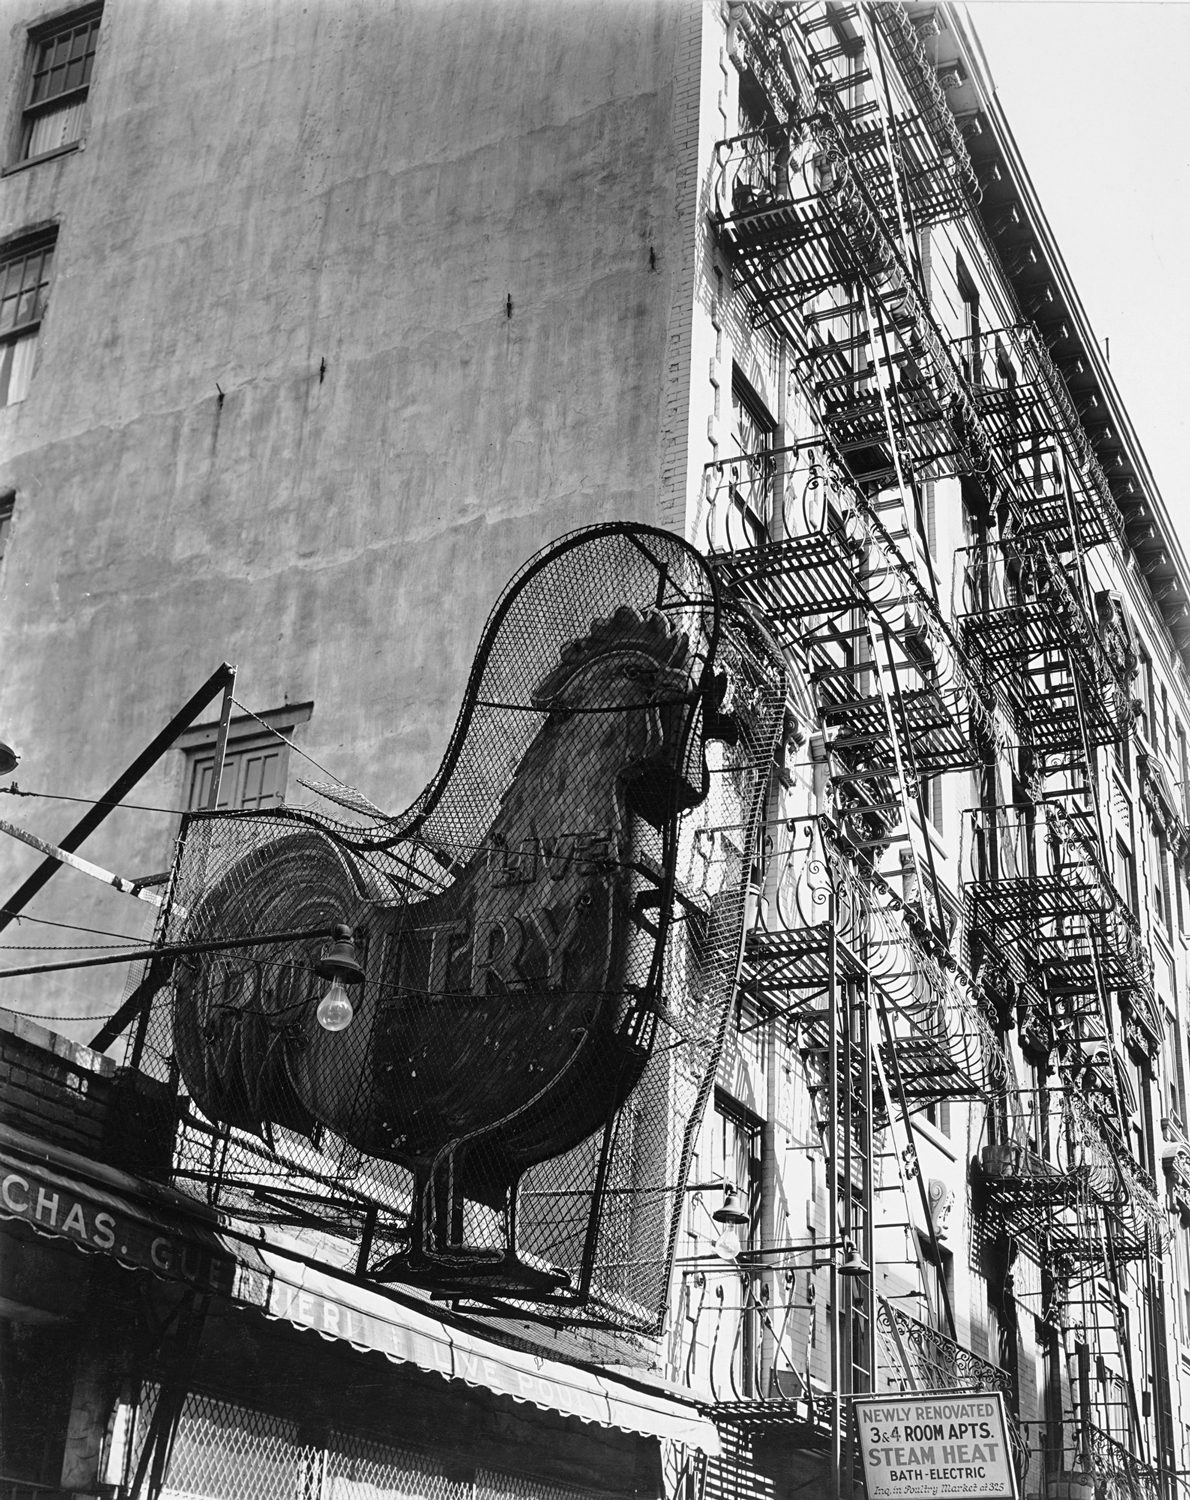 Poultry Shop, East 7th Street, New York